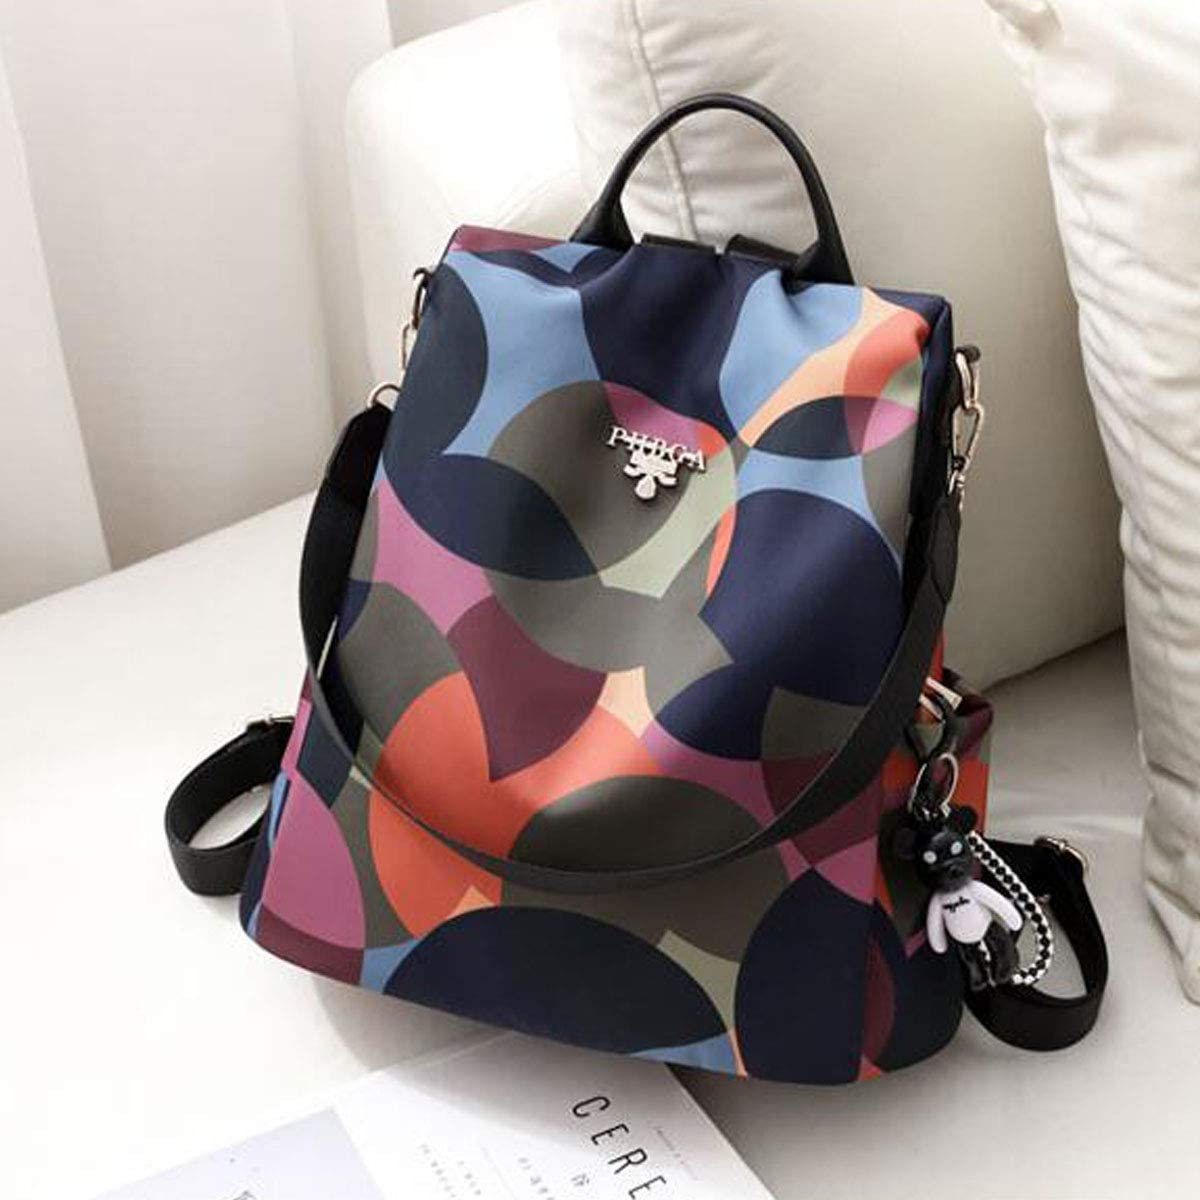 Chenjinxiang01 Backpack for Women Design : Style Two Personalized Versatile Shoulder Bag Waterproof Oxford Cloth Backpack